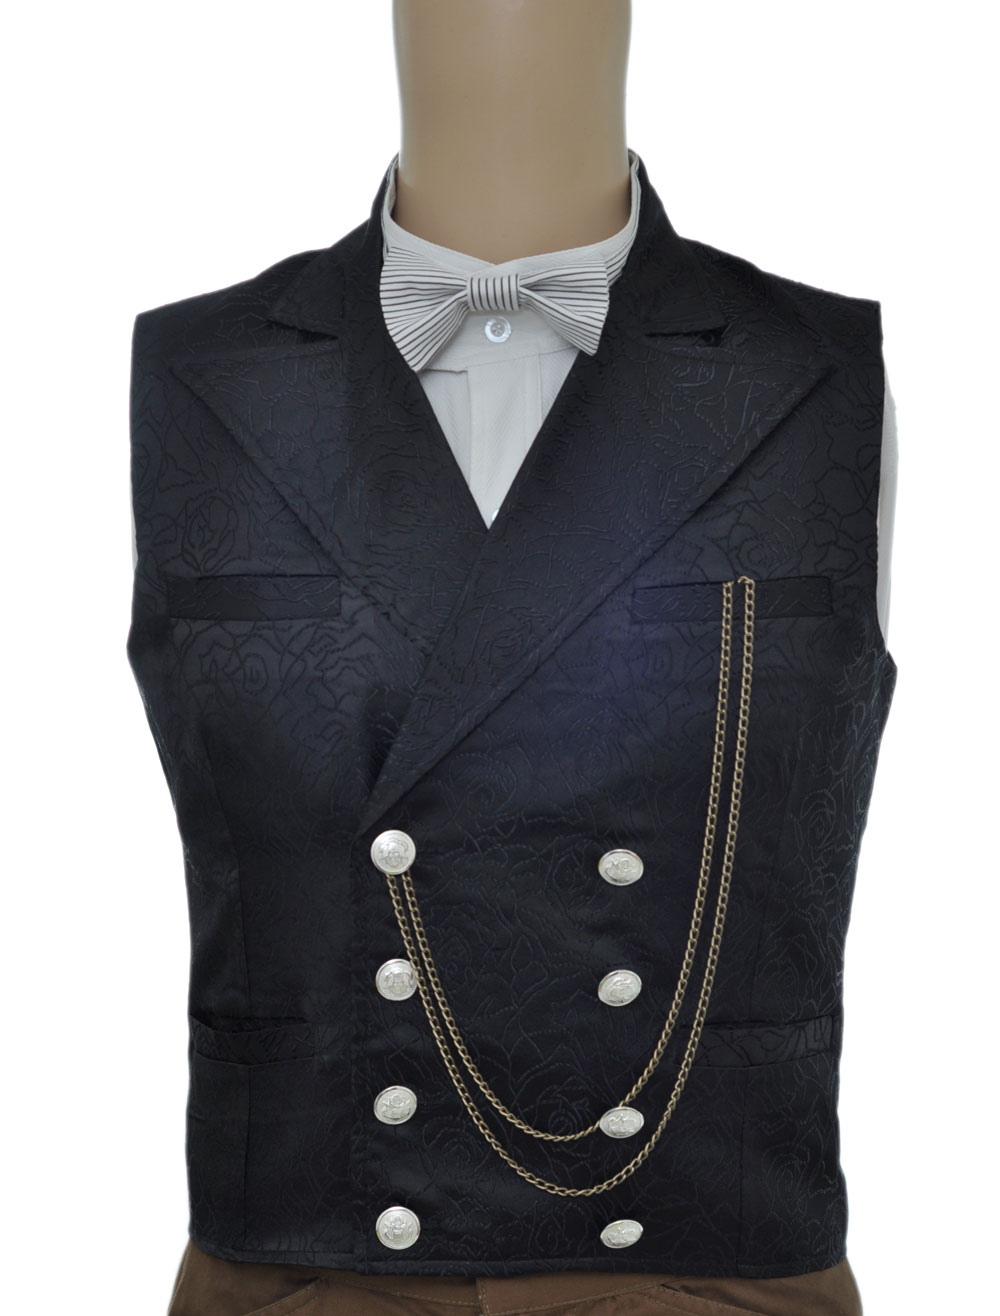 Buy Vintage Steampunk Waistcoat Black Men's Double Breasted Pocket Watch Chain Back Strap Jacquard Retro Suit Vest Halloween for $61.99 in Milanoo store